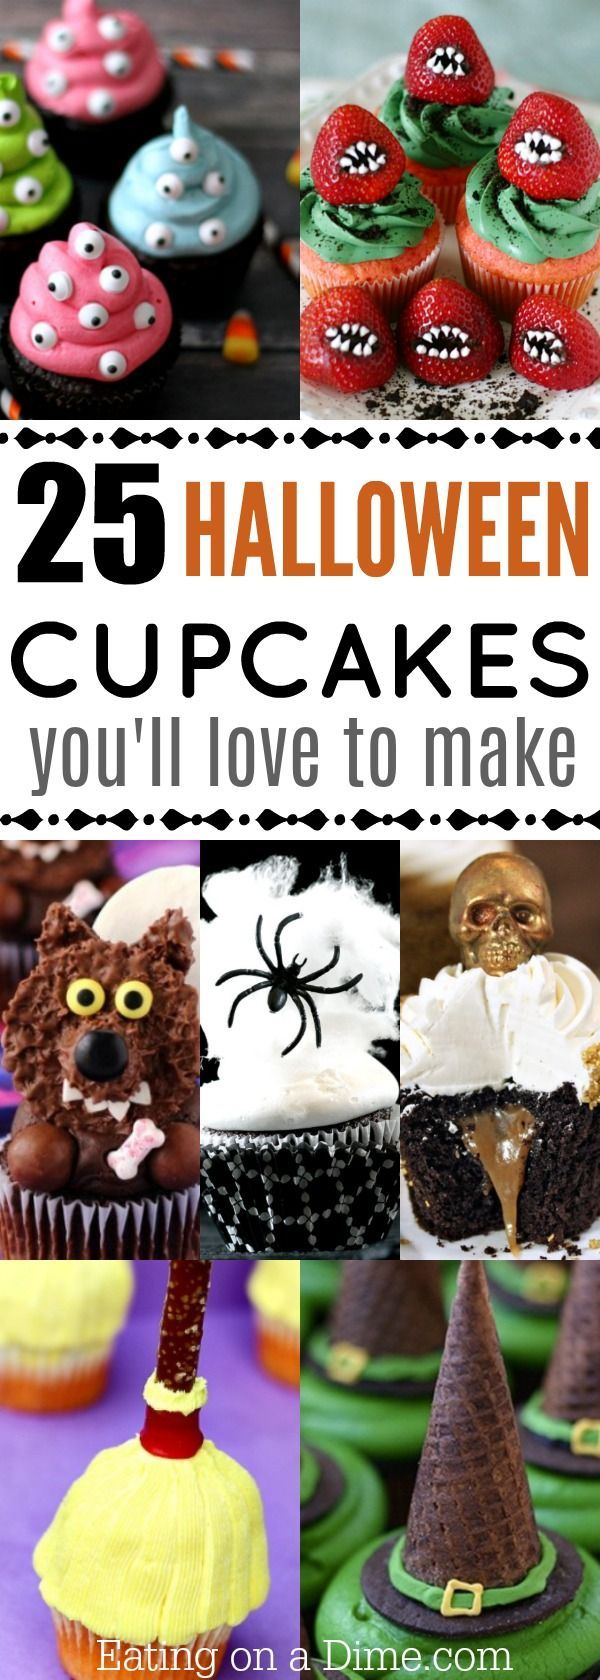 Try these fun and easy Halloween cupcakes ideas that kids are going to love. 25 ideas that don't cost a fortune to make and are easy on your wallet! #haloween #cupcakes